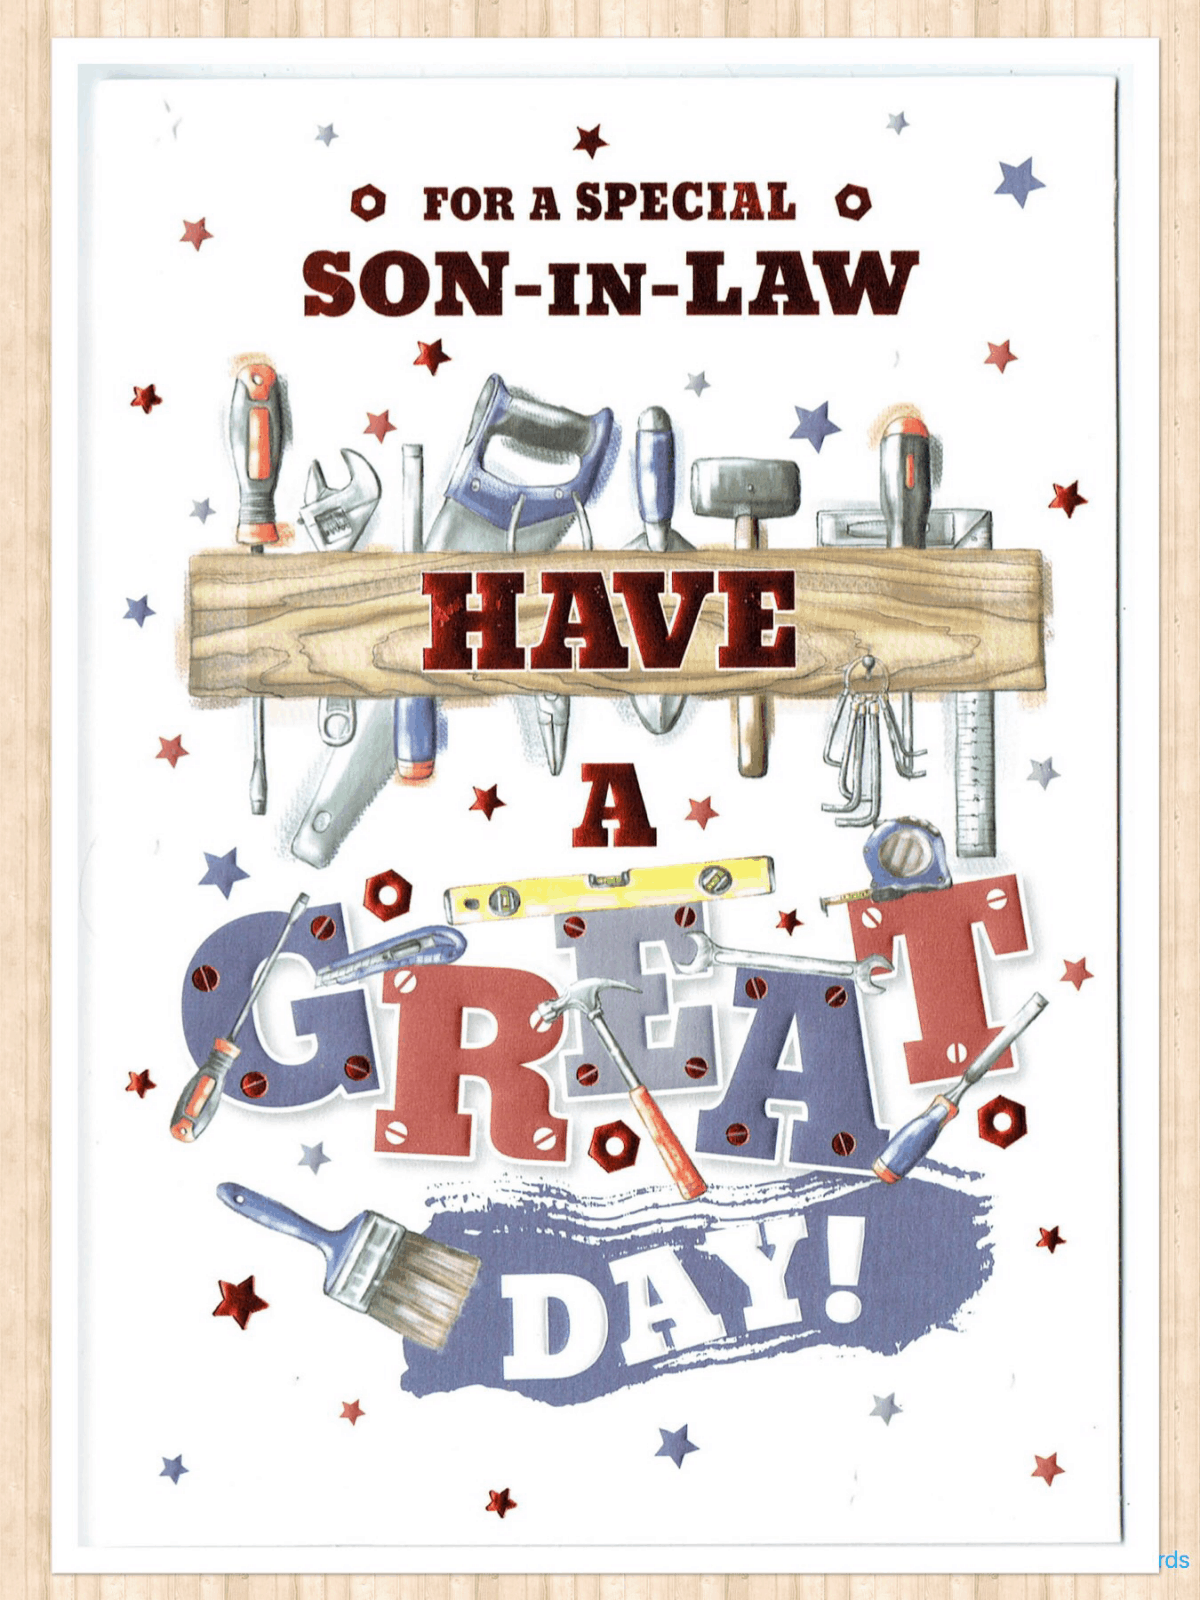 Son In Law Birthday Card With A DIY Tools Theme Free Postage